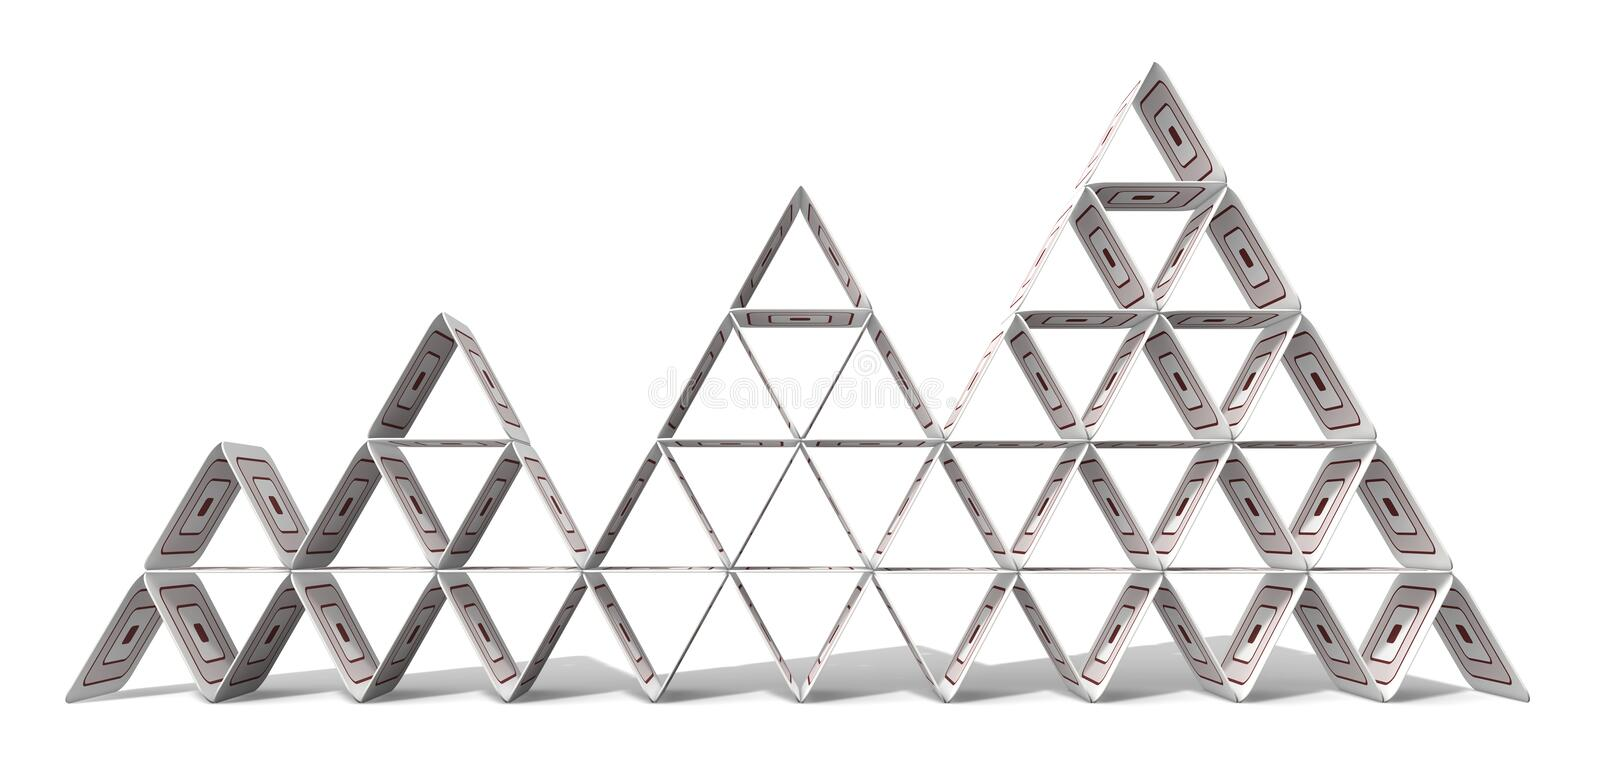 Paperboard Pyramid royalty free stock photography